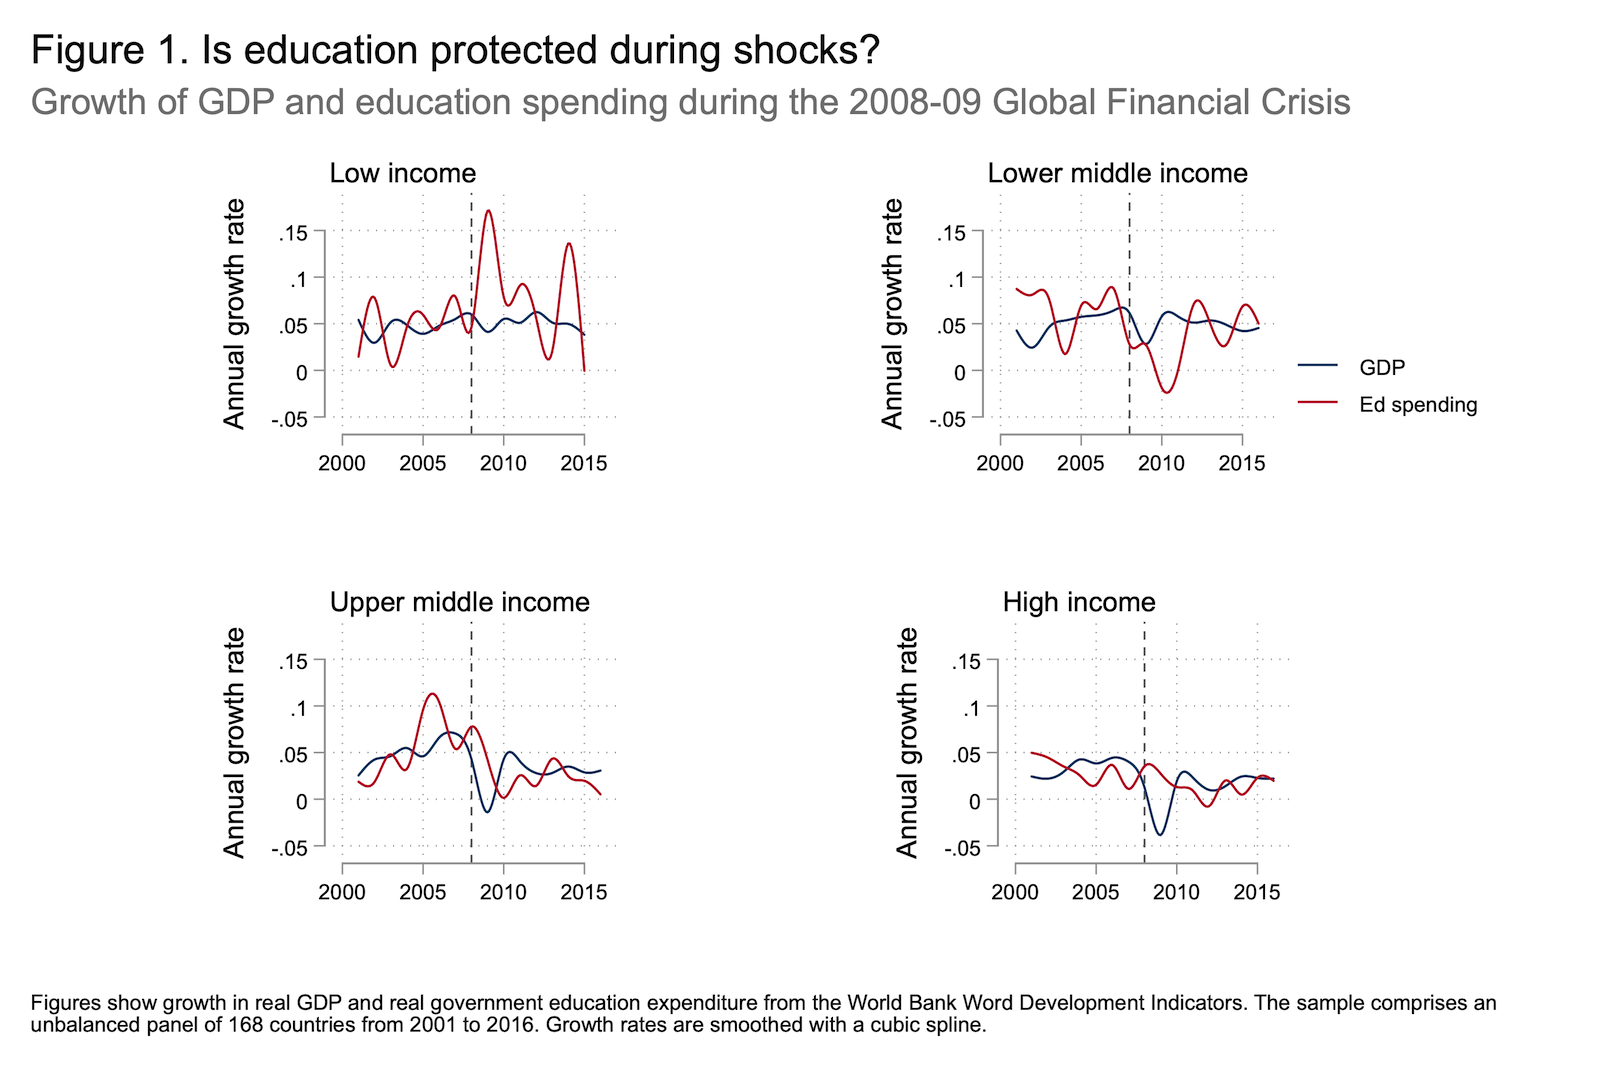 Chart showing lower-middle-income countries saw significant dips in education spending after the financial crisis, while high-income countries did not